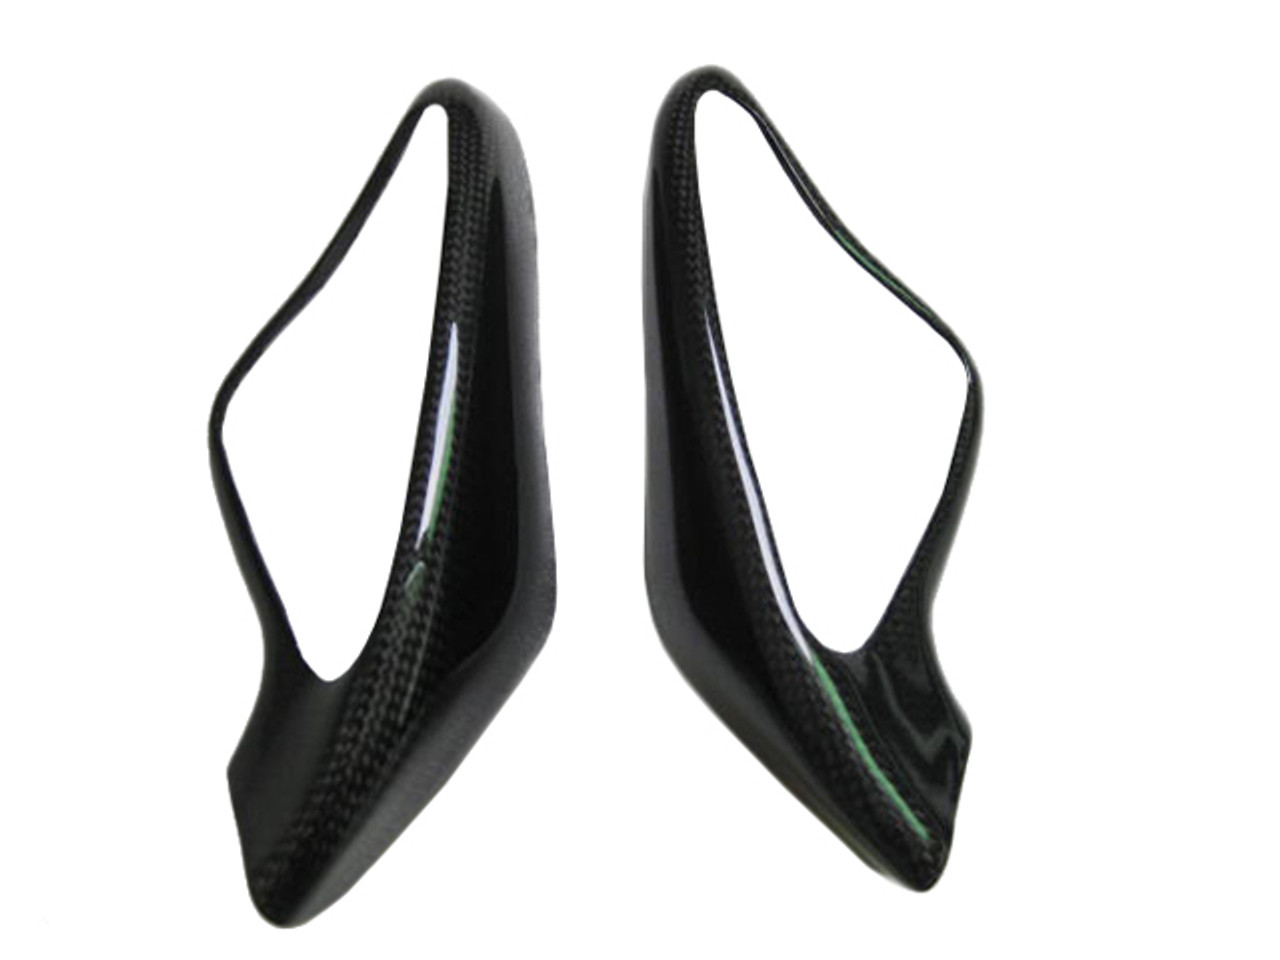 Mirror Covers in Carbon with Fiberglass for Ducati 1198,1098, 848